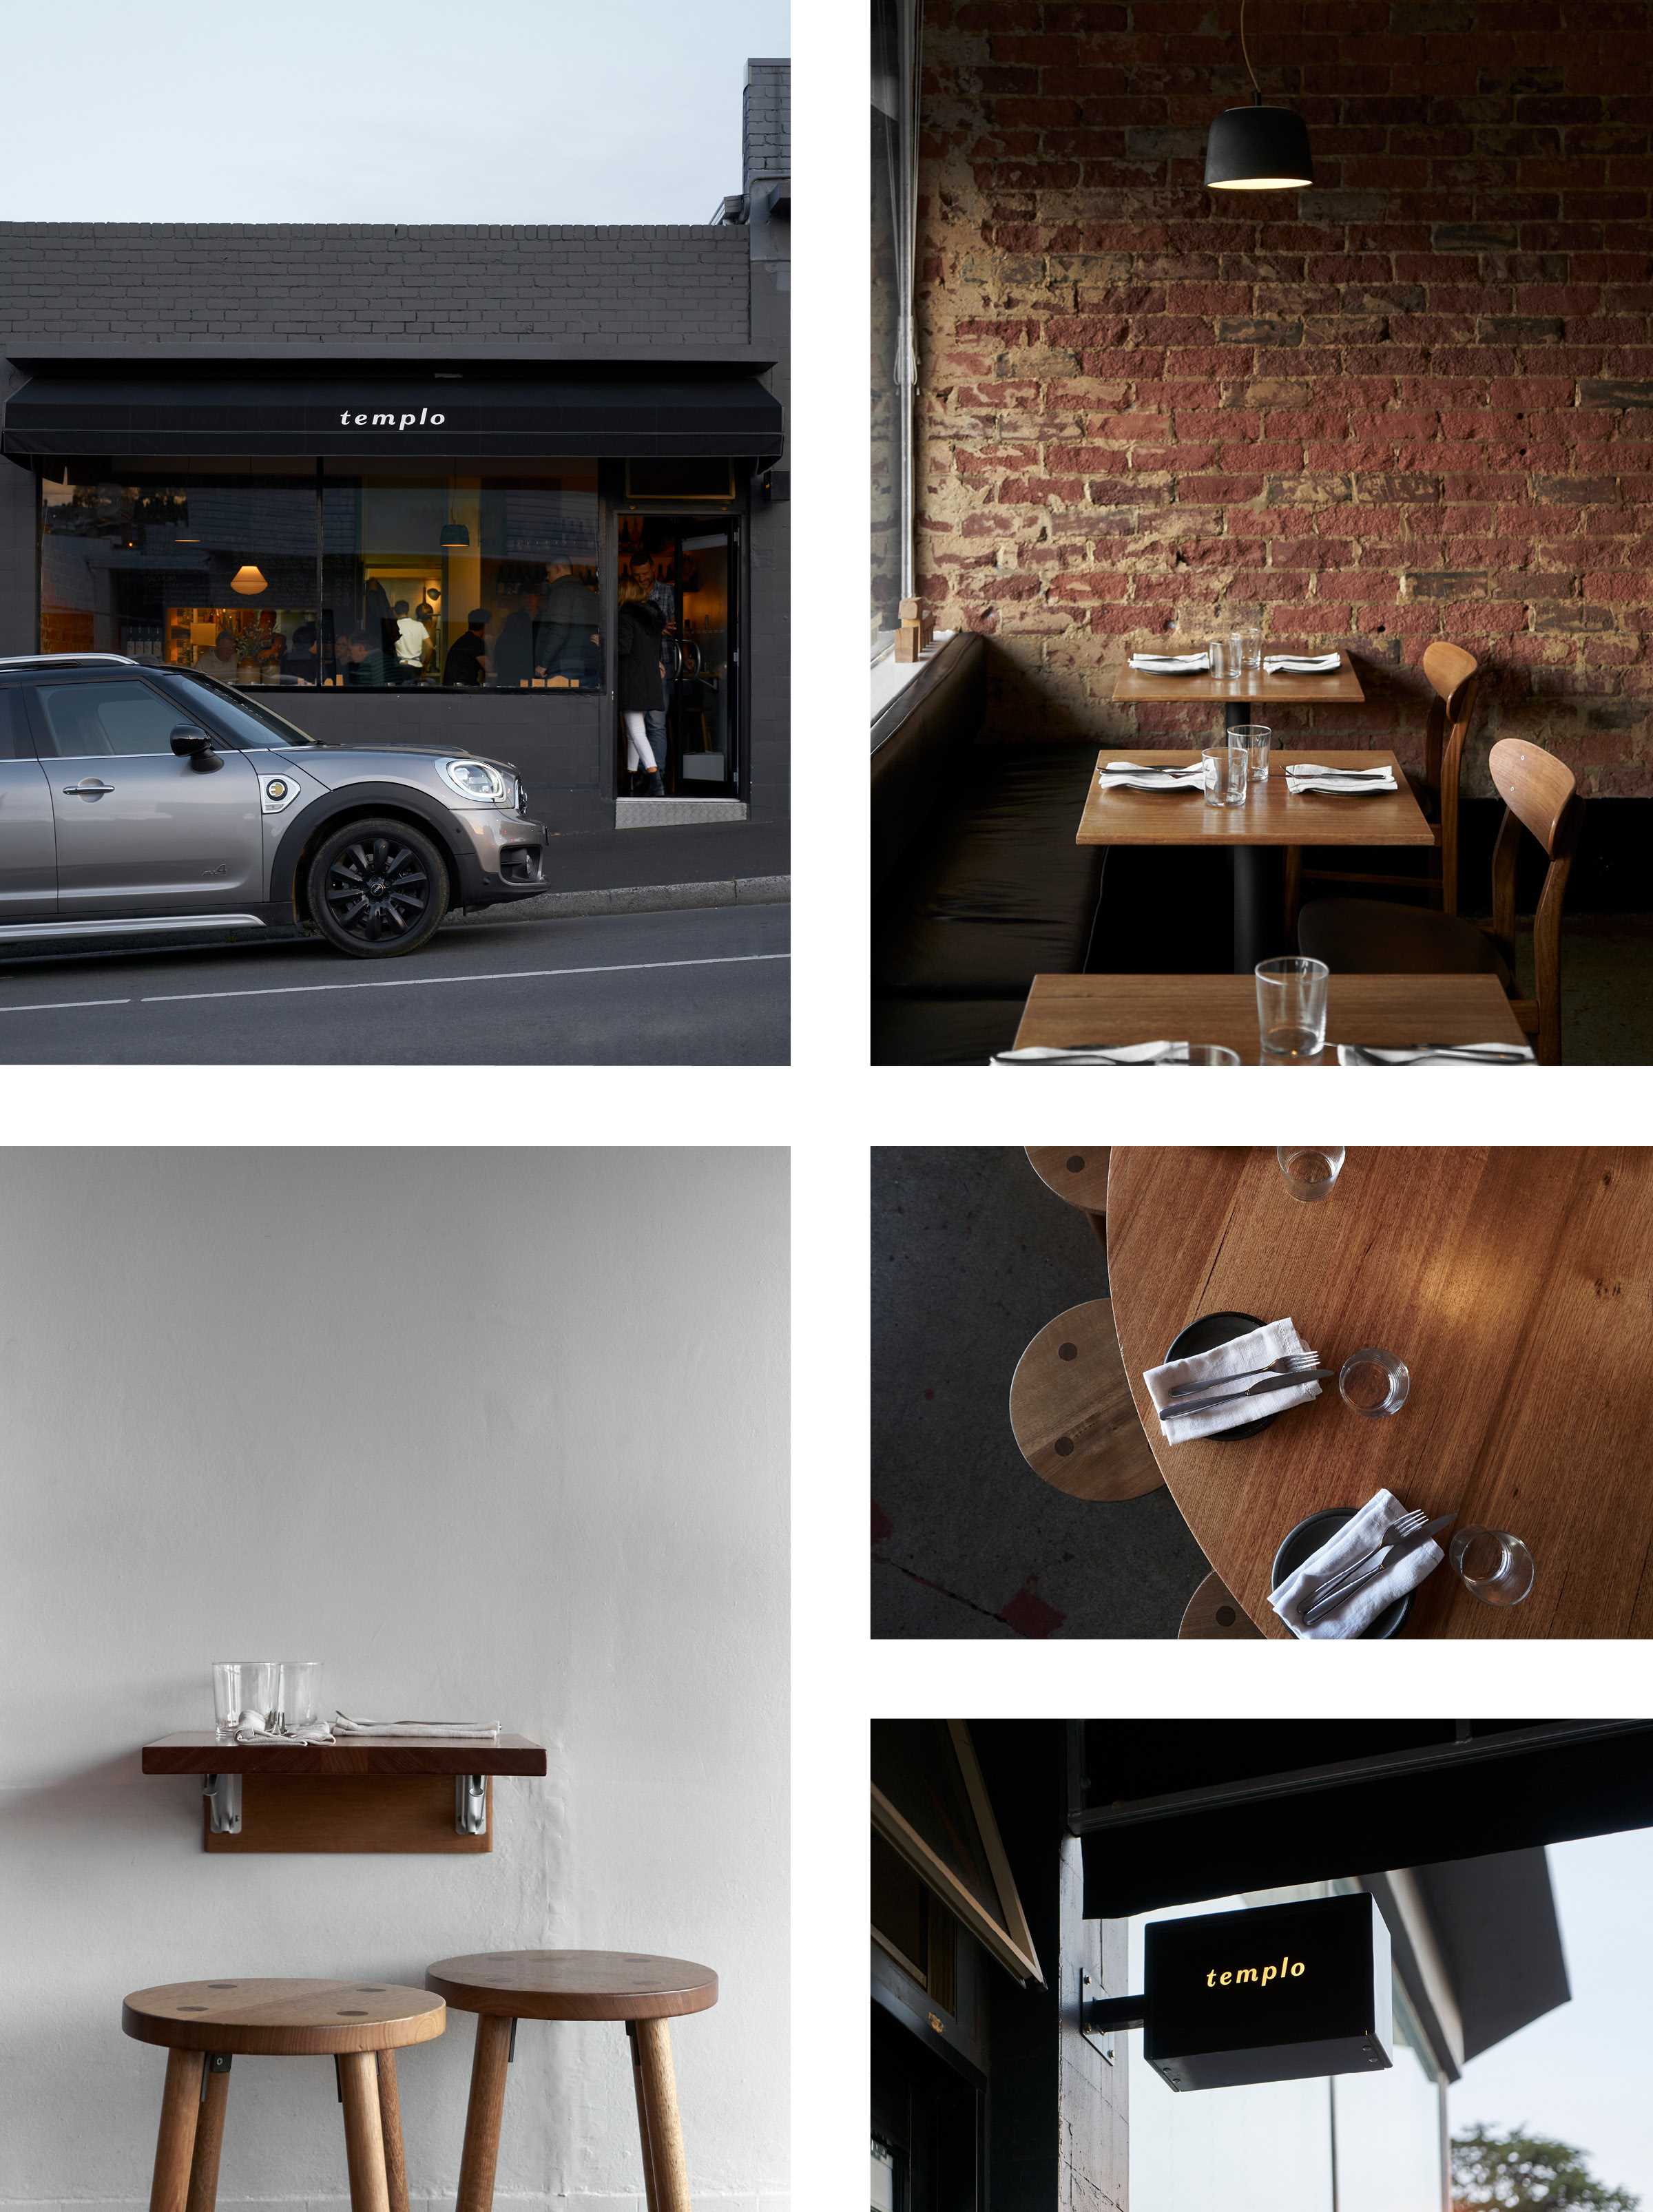 A MINI Guide To Tasmania - Best Modern Design Cafes, Bars, Restaurants, Hotels - HEY GENTS